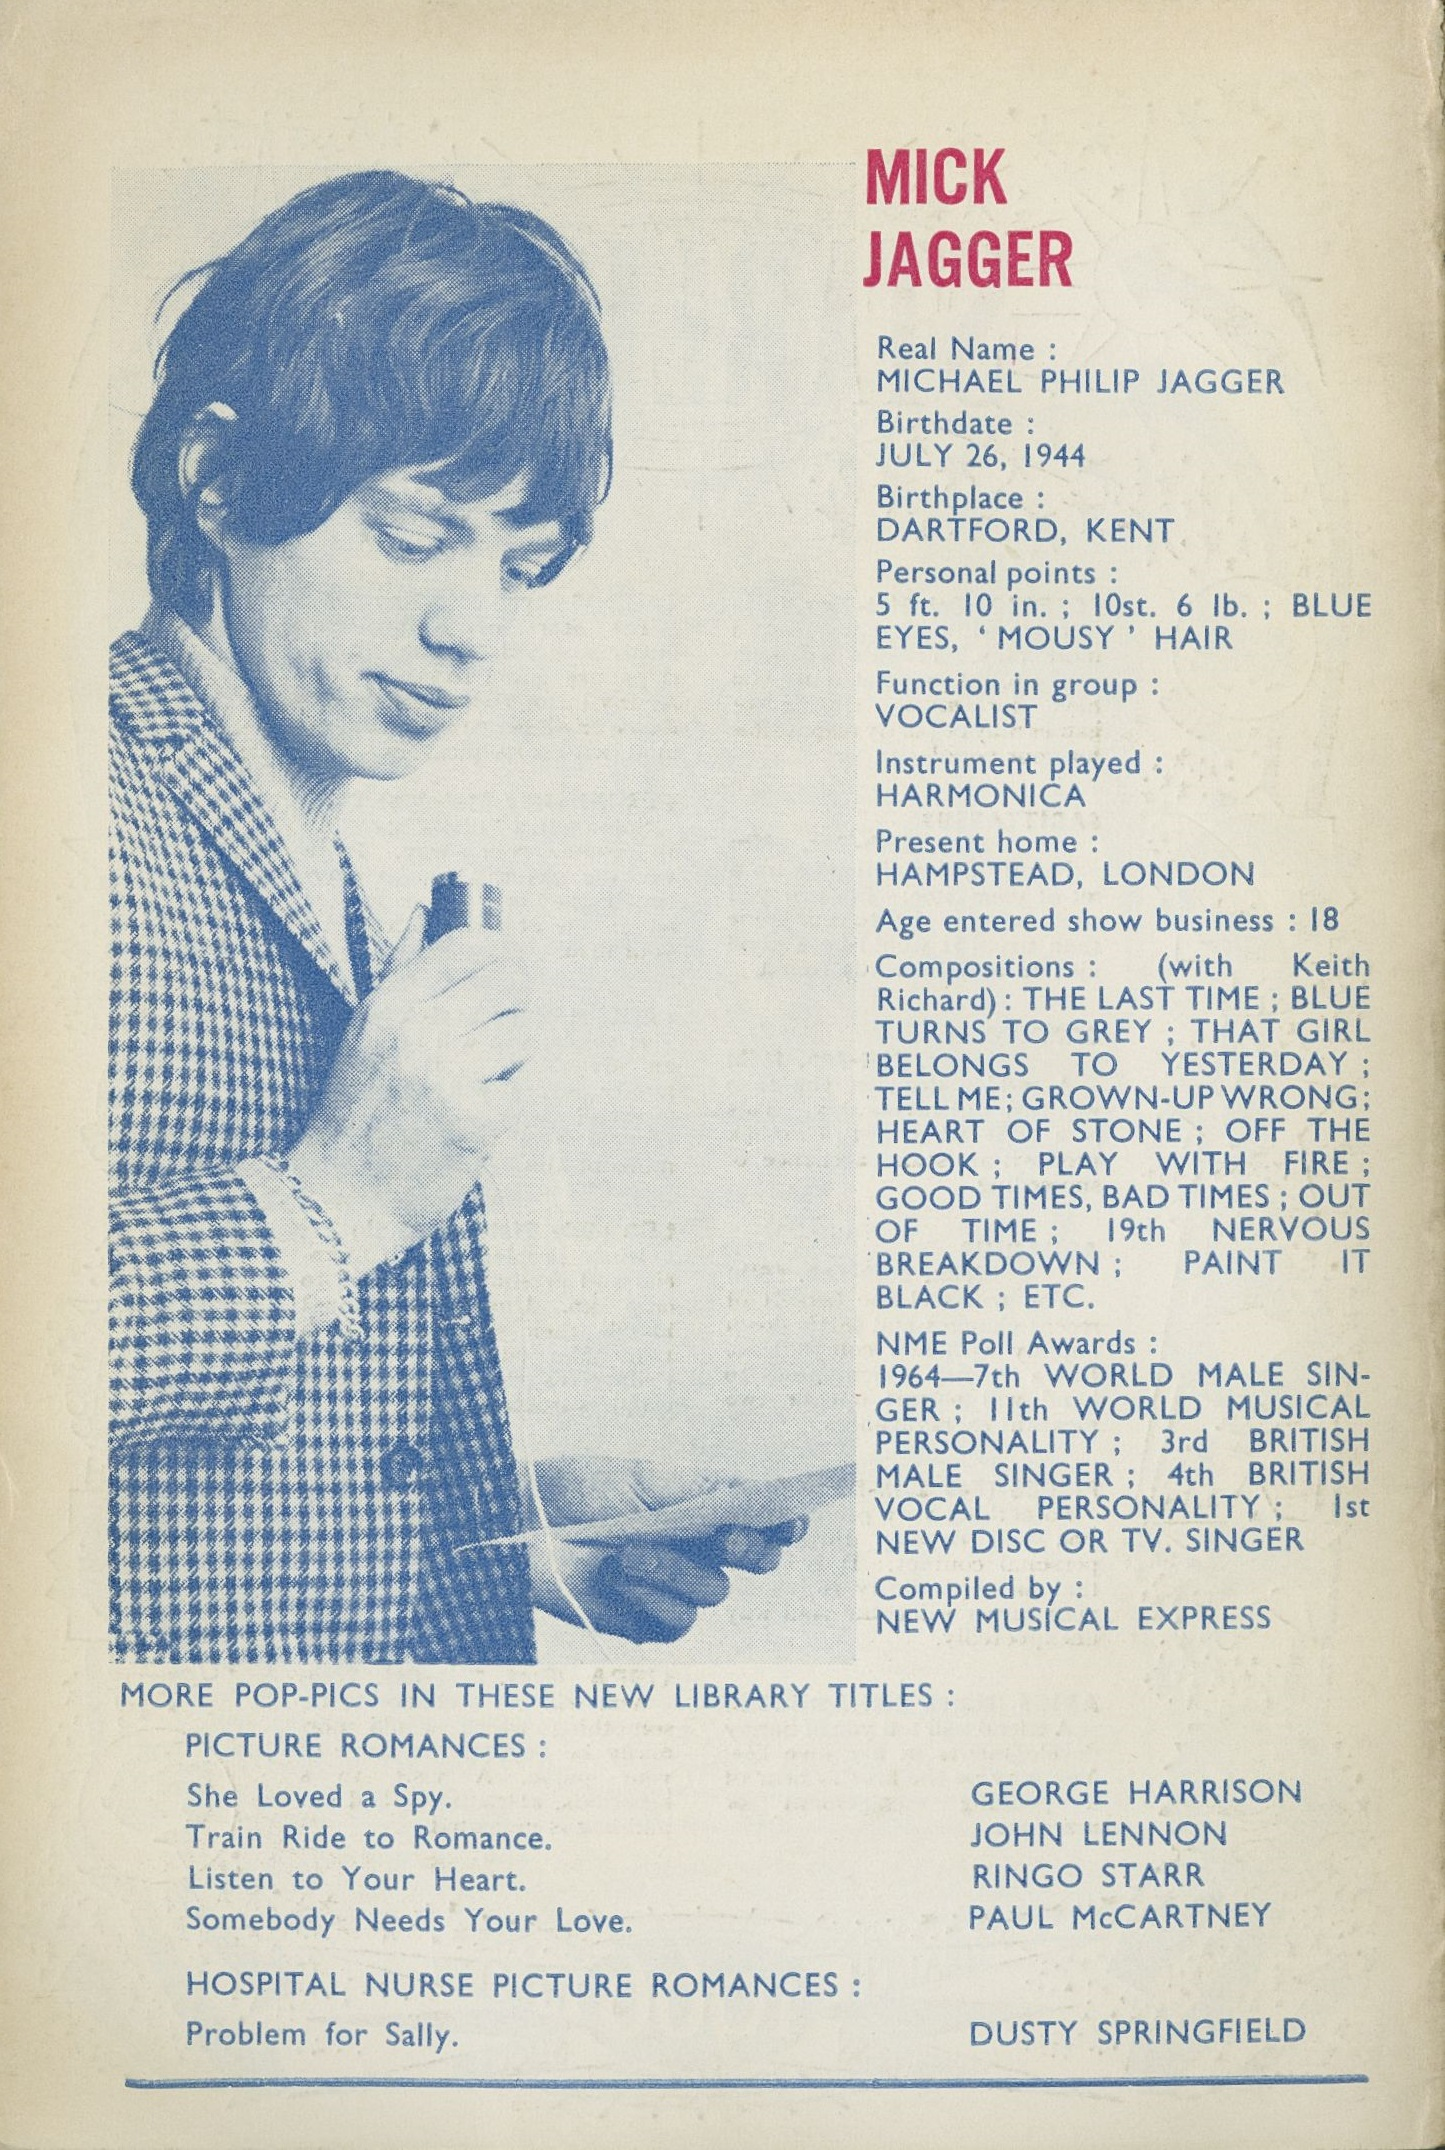 Short biography and picture of Mick Jagger